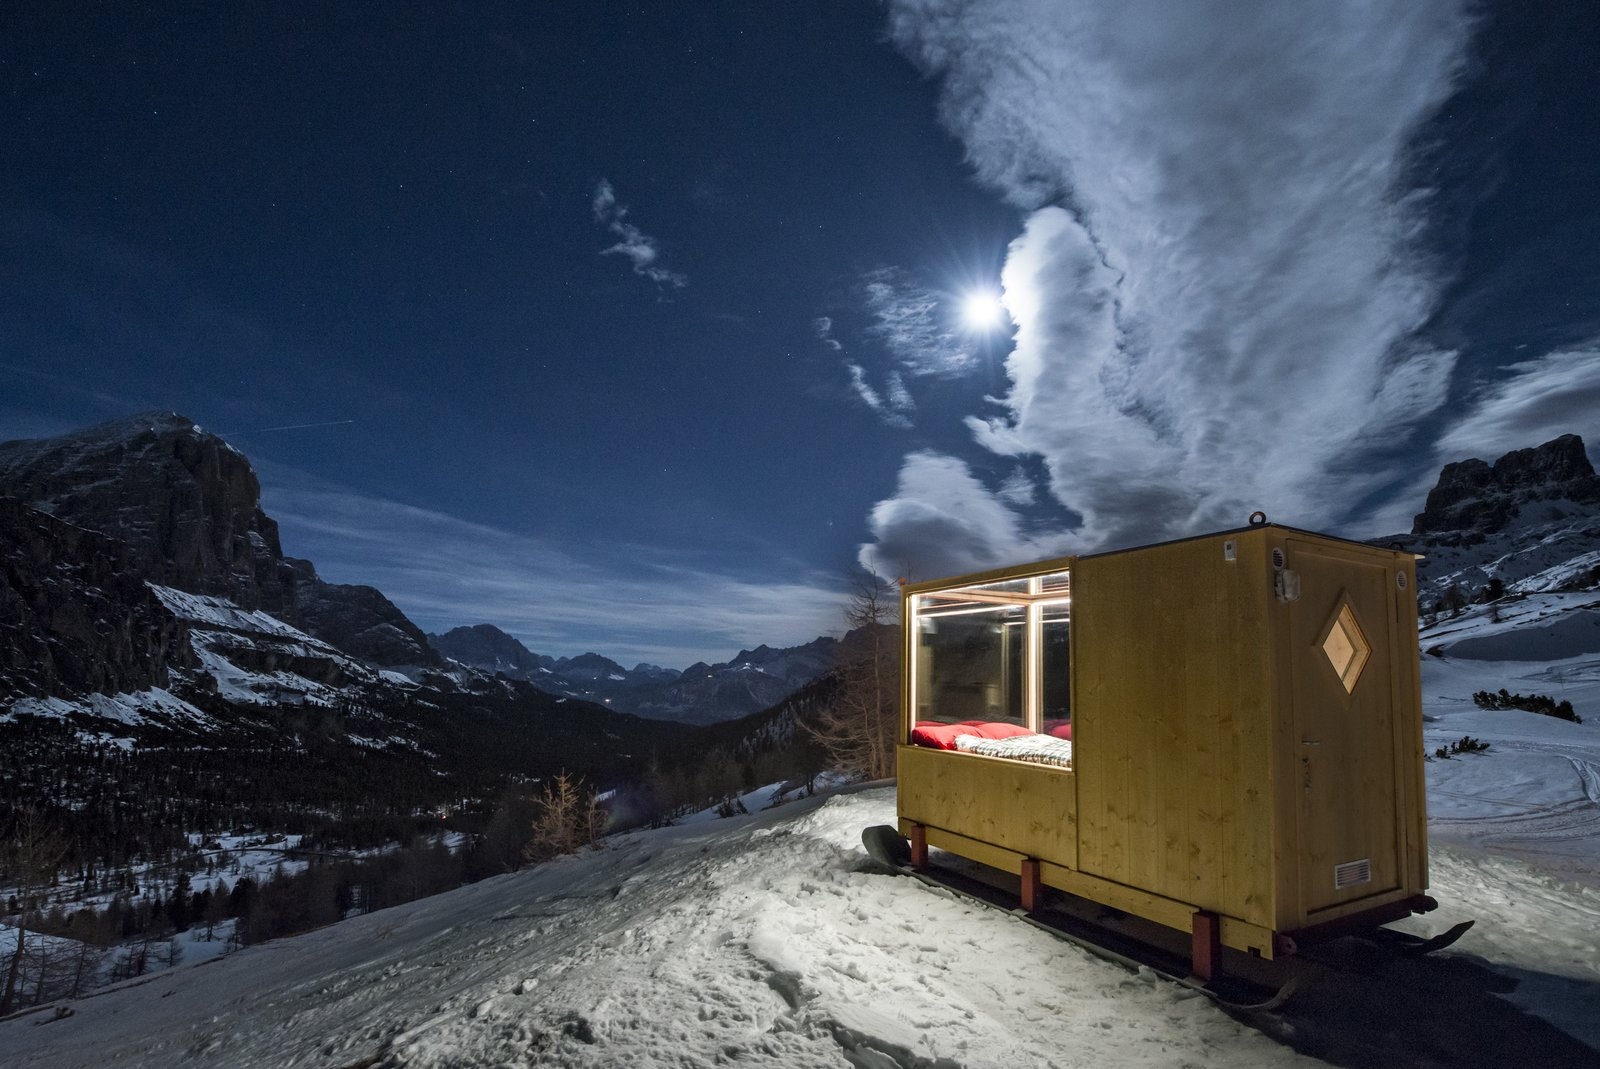 Located about 12.5 miles outside Cortina d'Ampezzo, guests arrive via snowshoes or snowmobile.  Off the grid from One Stunning Panorama, 6,742 Feet High Up in the Alps